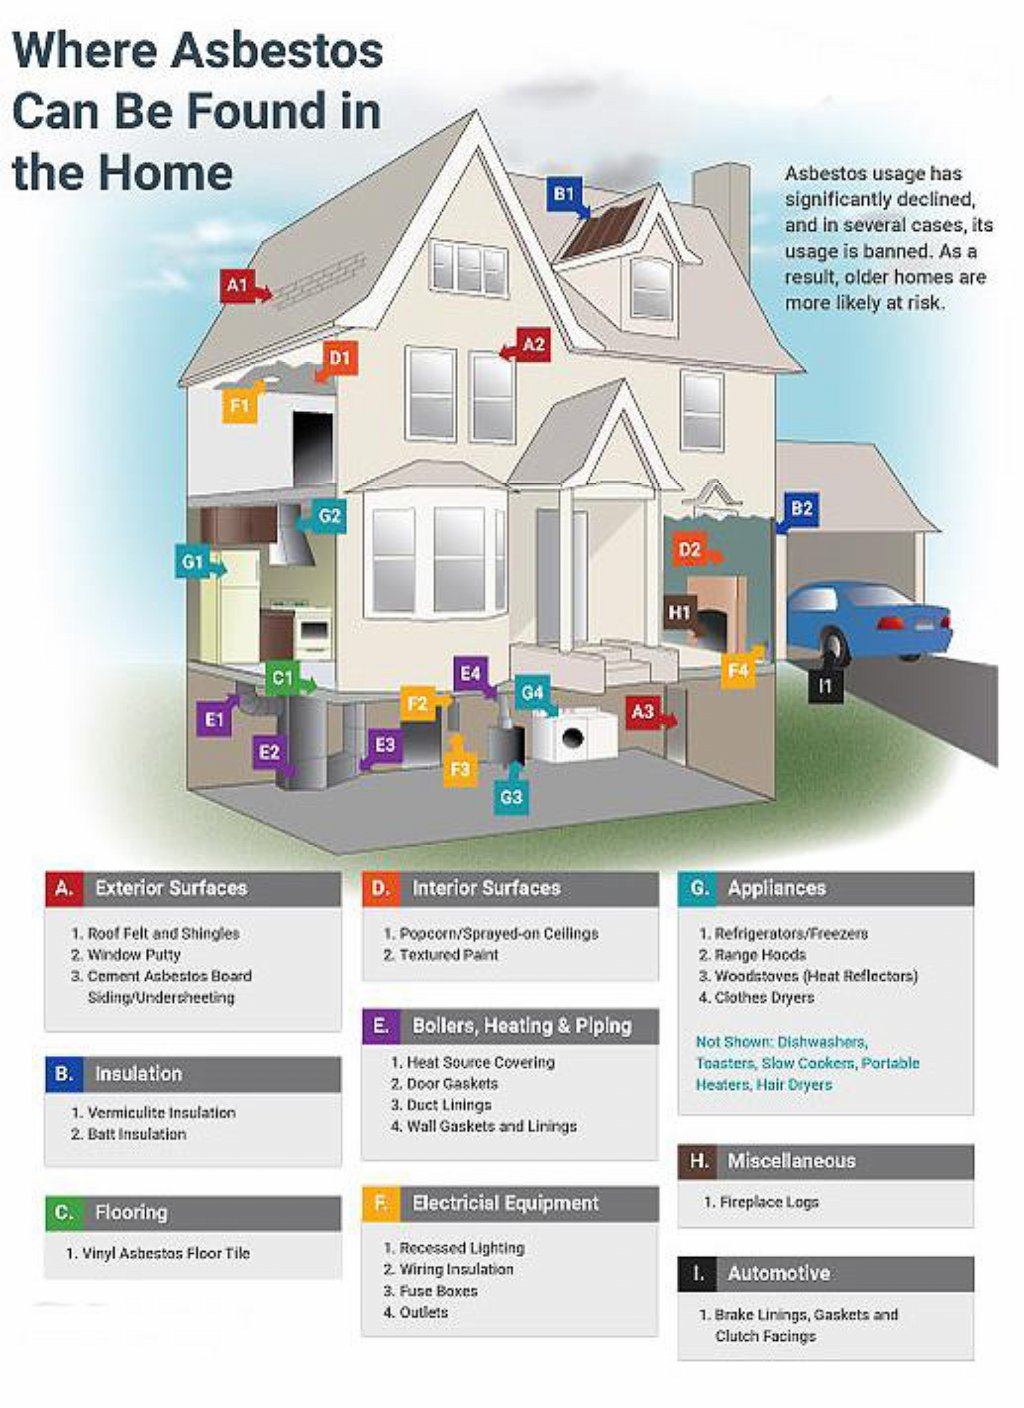 image-877015-asbestos-in-the-home-diagram-c9f0f.w640.jpg